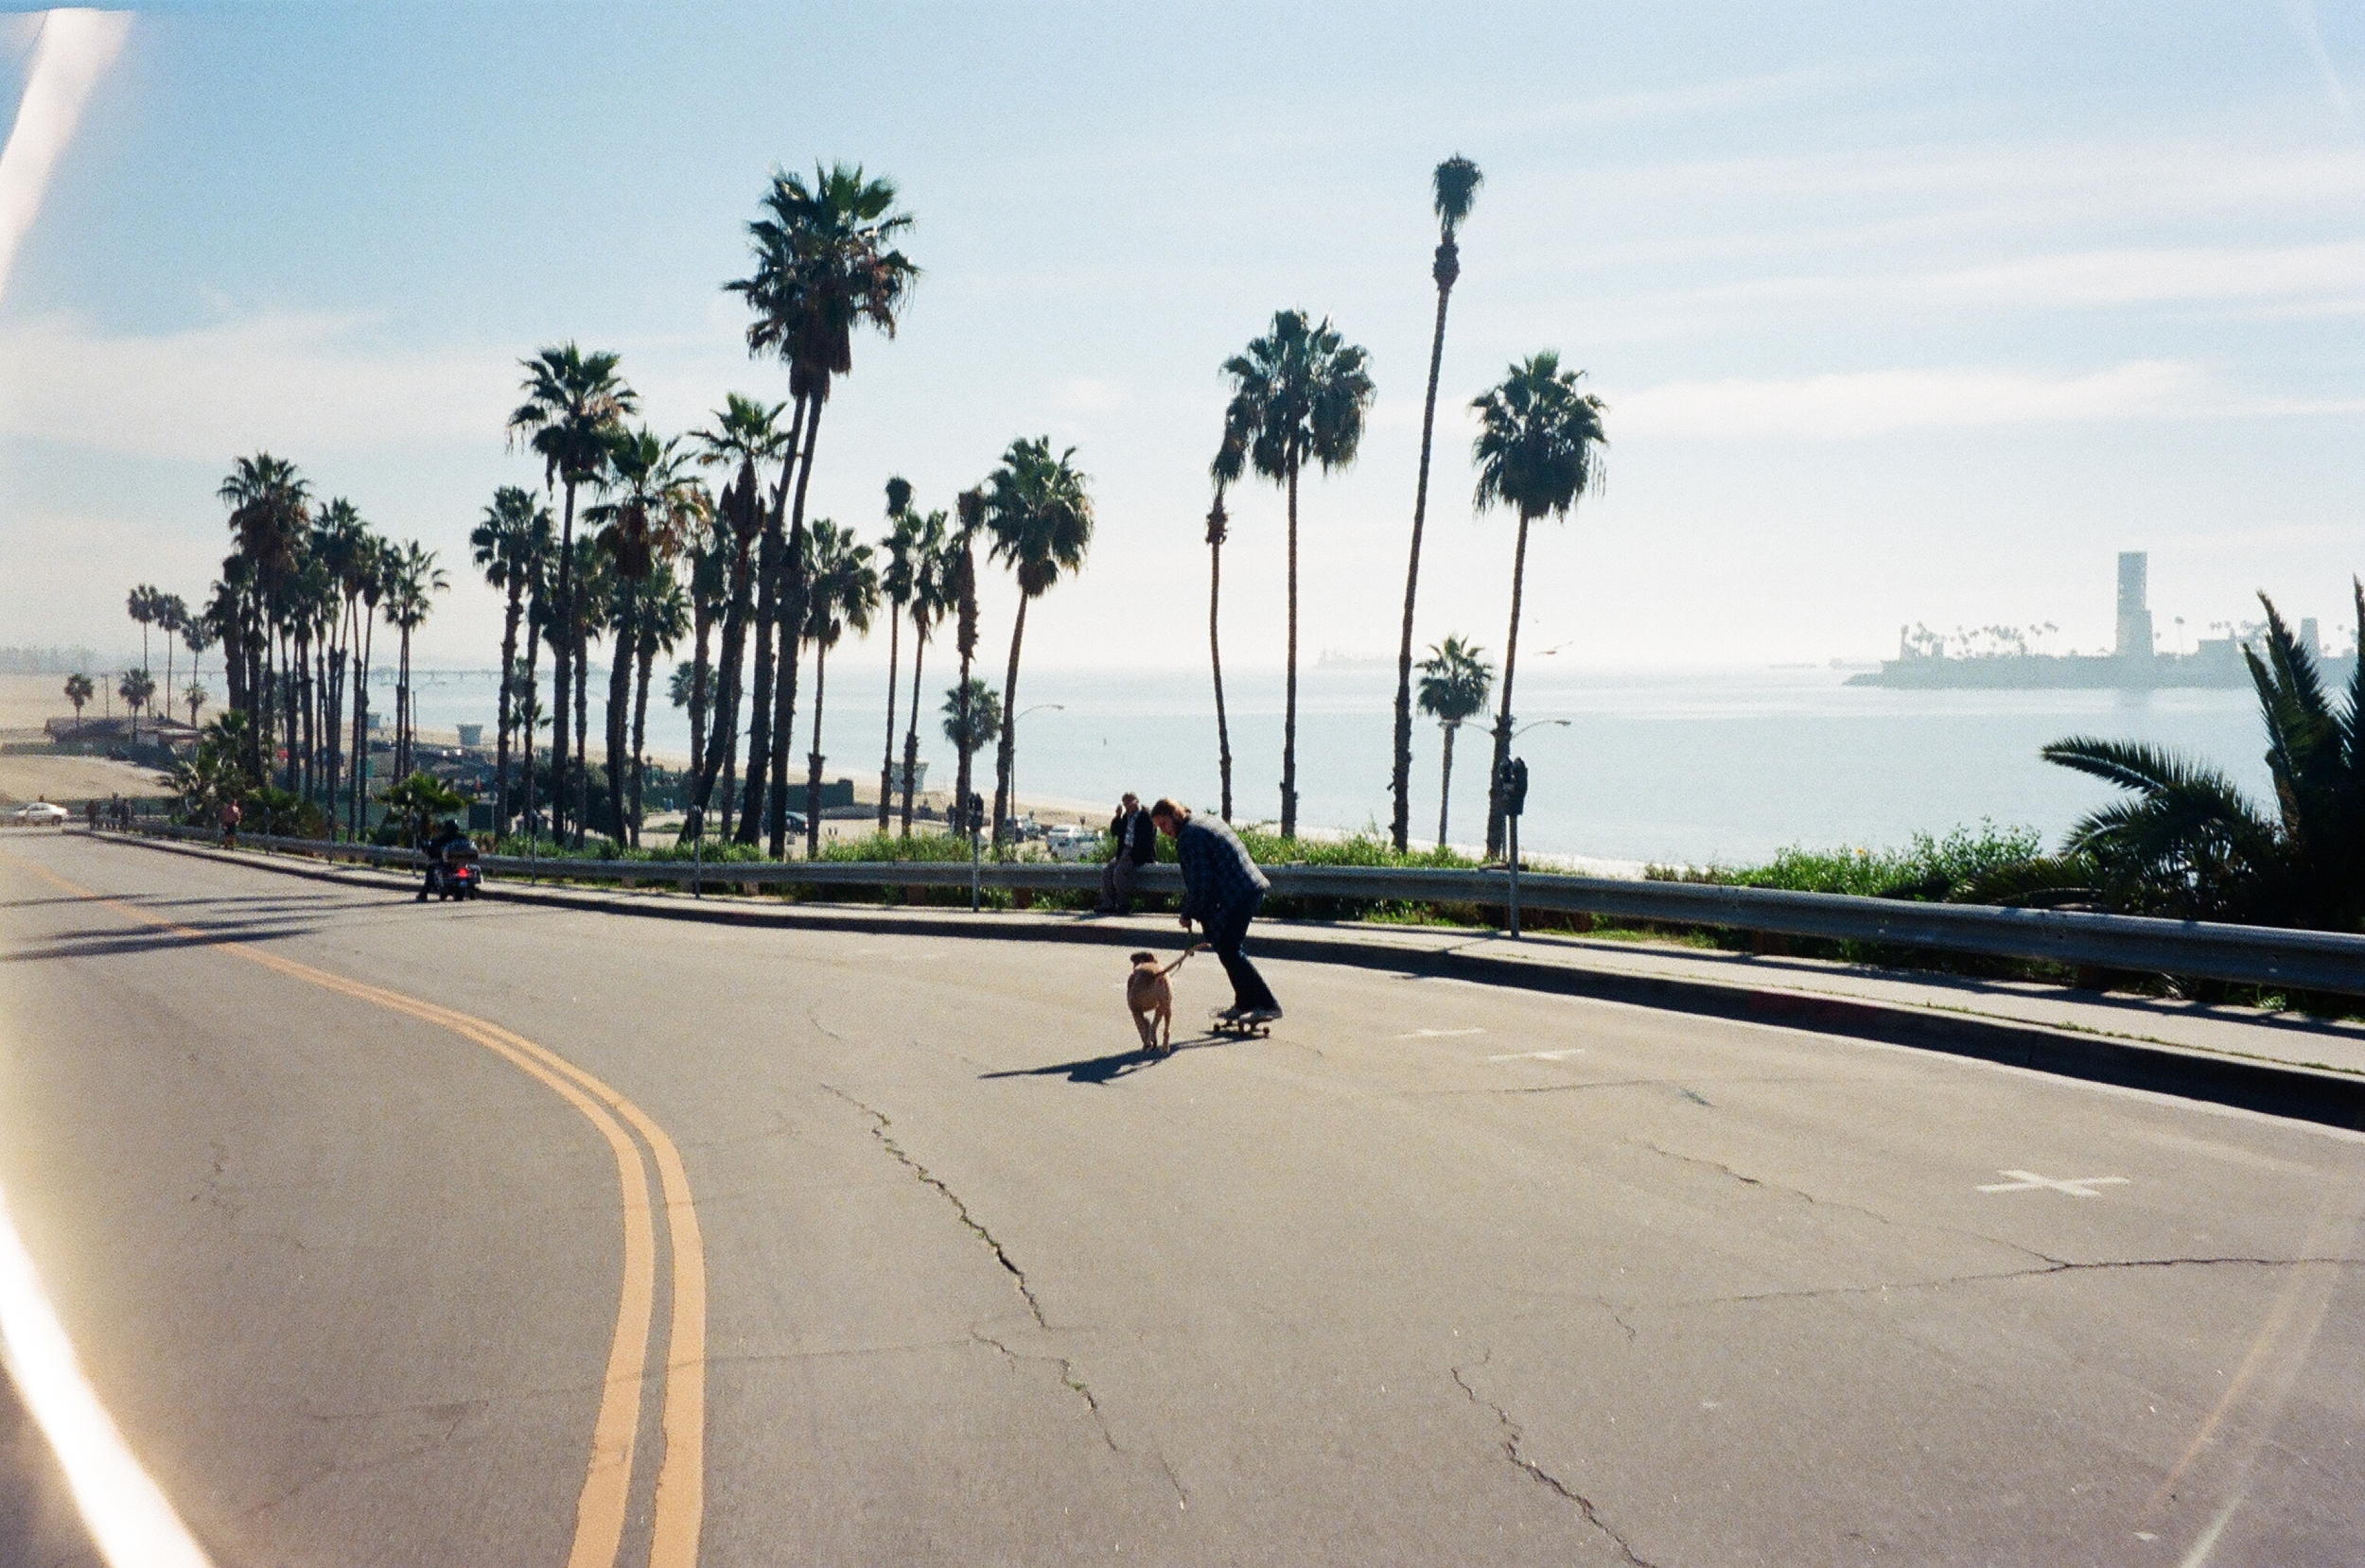 """One of my personal favorites, Jon Dickson. Walking his dog Darling down the main strip of Long Beach. Same path takes us to a fun spot or fishing hole :)"""